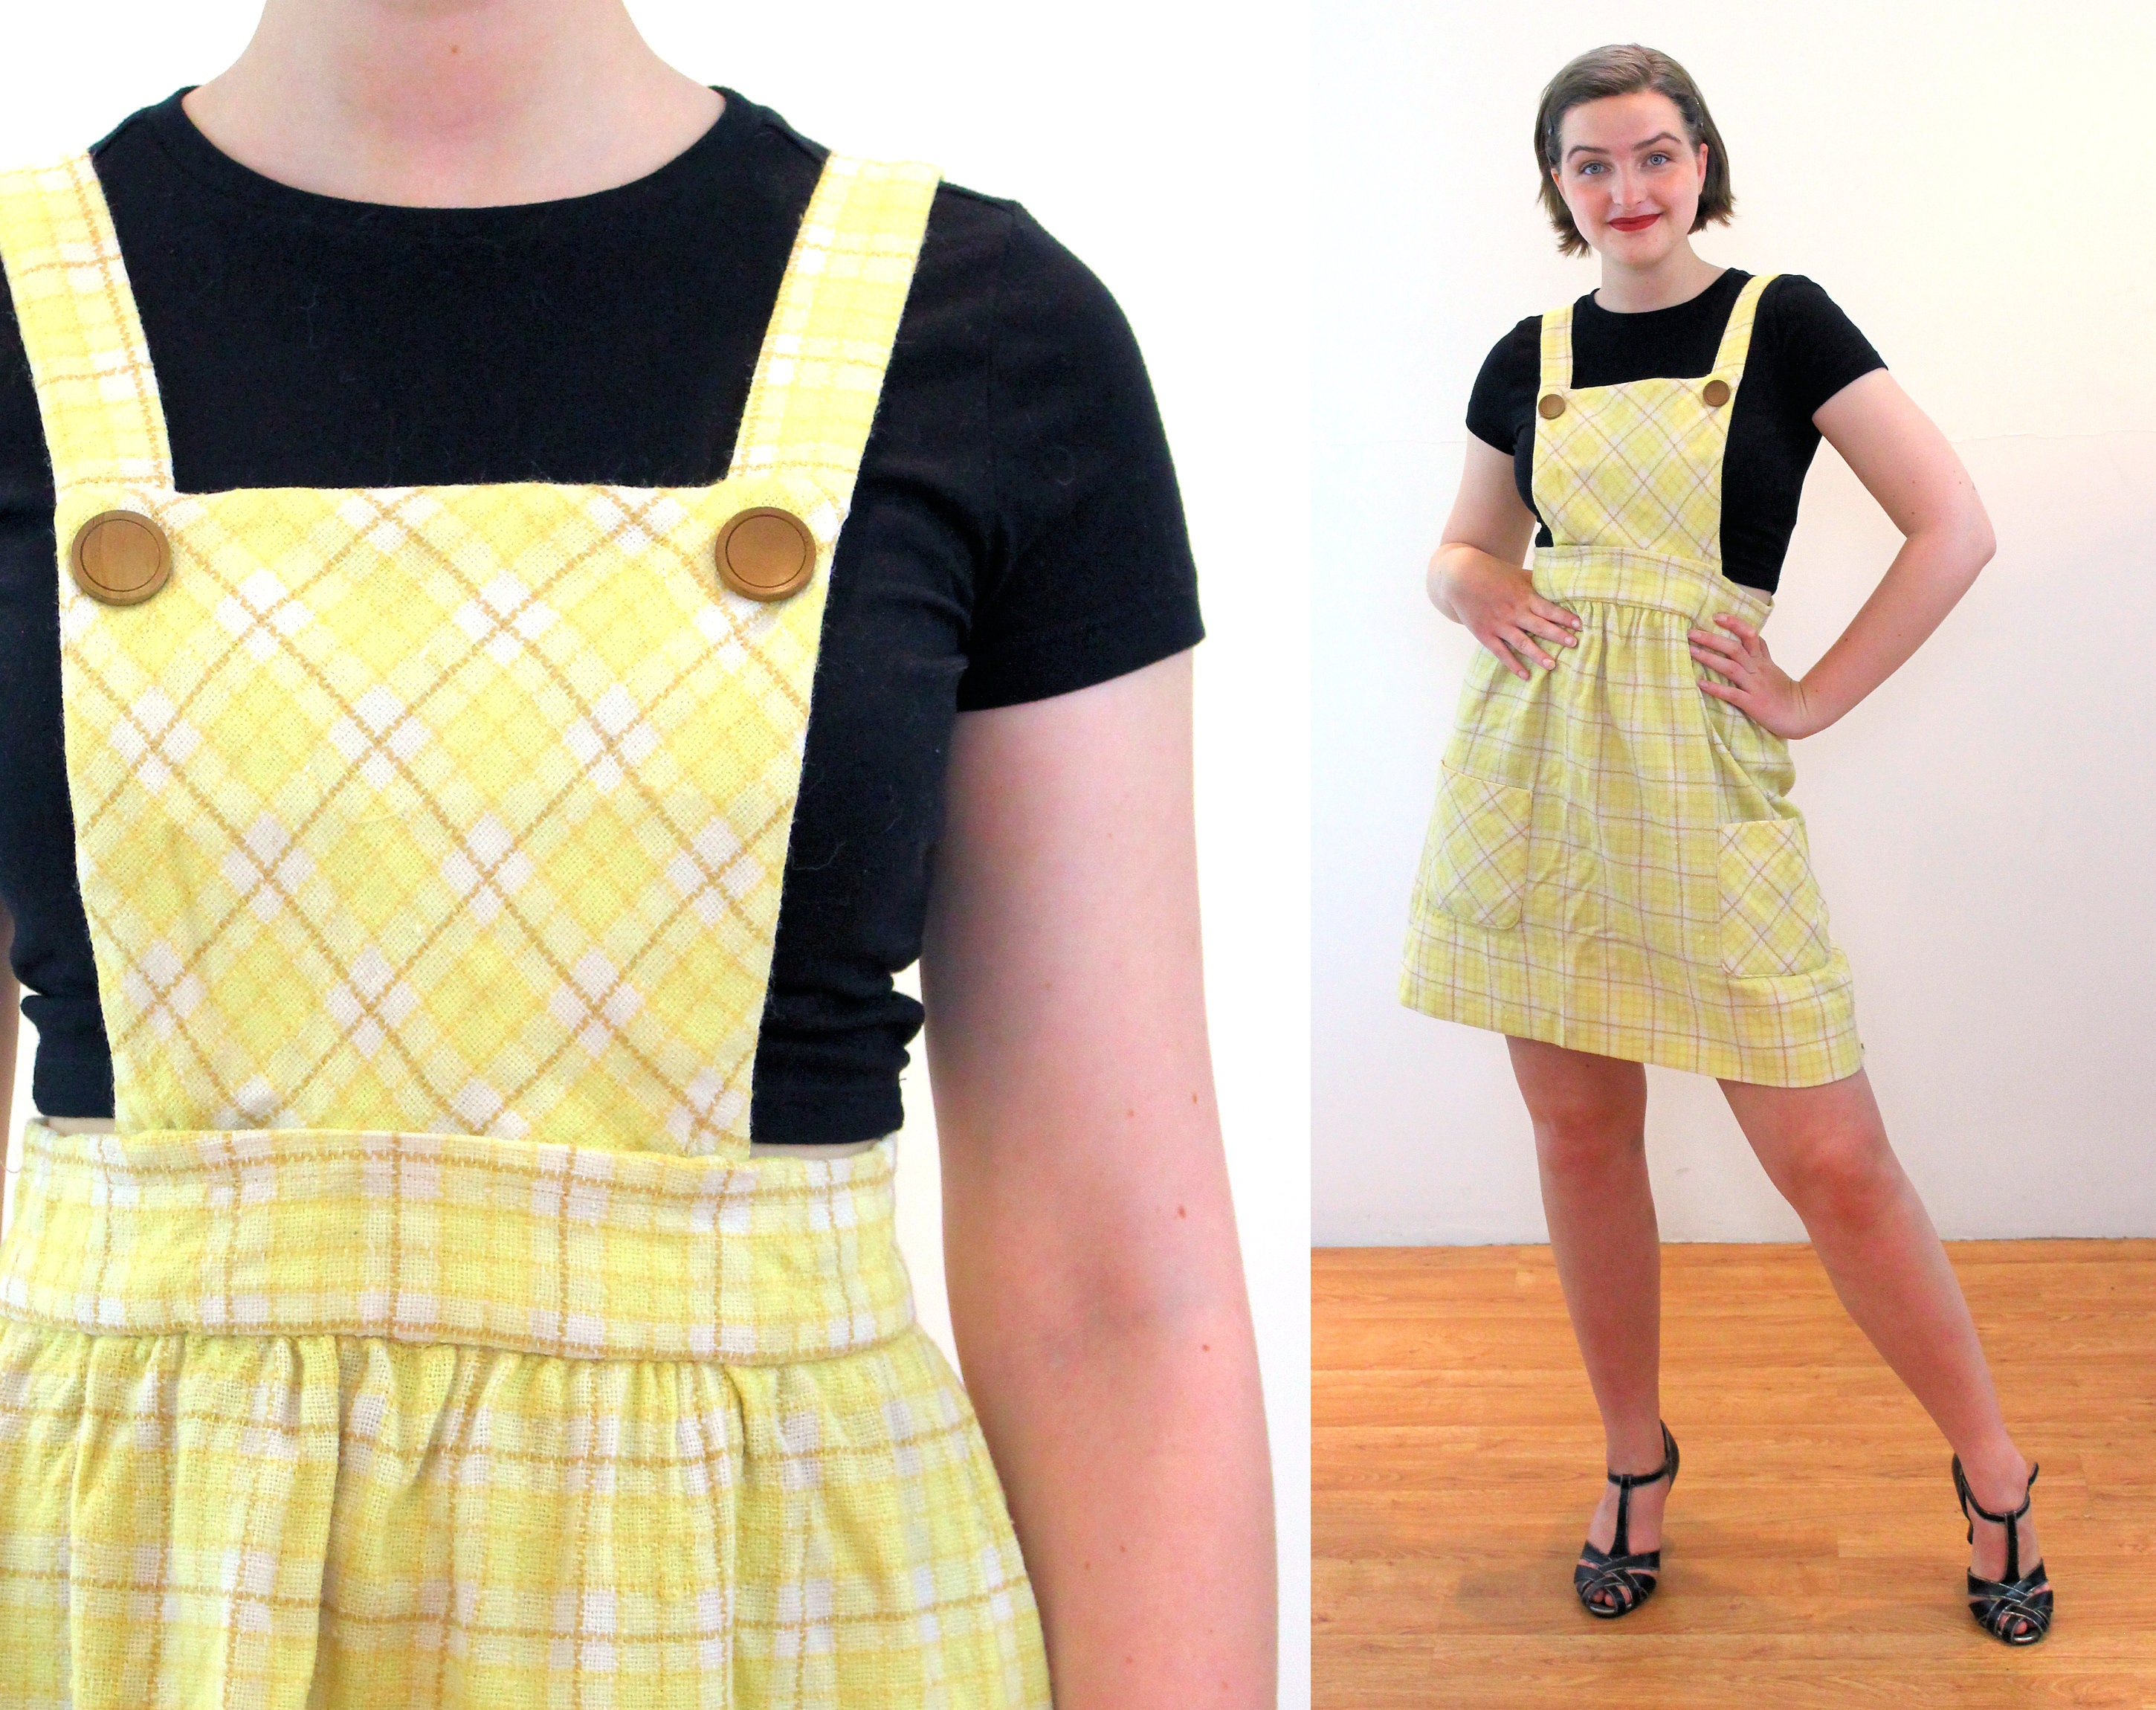 Vintage Aprons, Retro Aprons, Old Fashioned Aprons & Patterns 60S Plaid Pinafore Dress M, Yellow Wool Vintage Apron Suspenders Skirt With Pockets, Medium $59.00 AT vintagedancer.com